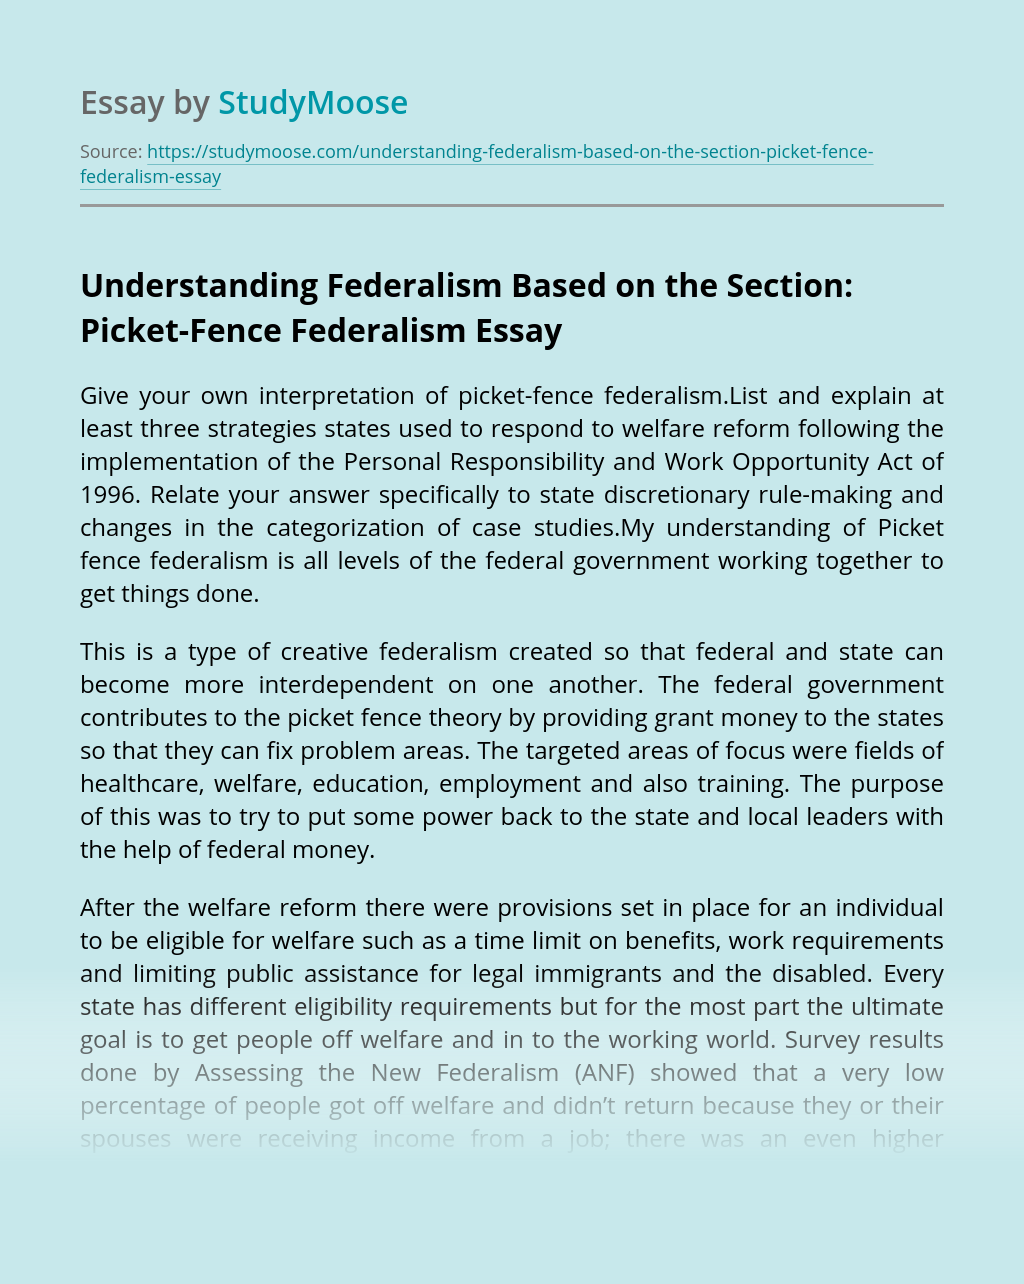 Understanding Federalism Based on the Section: Picket-Fence Federalism